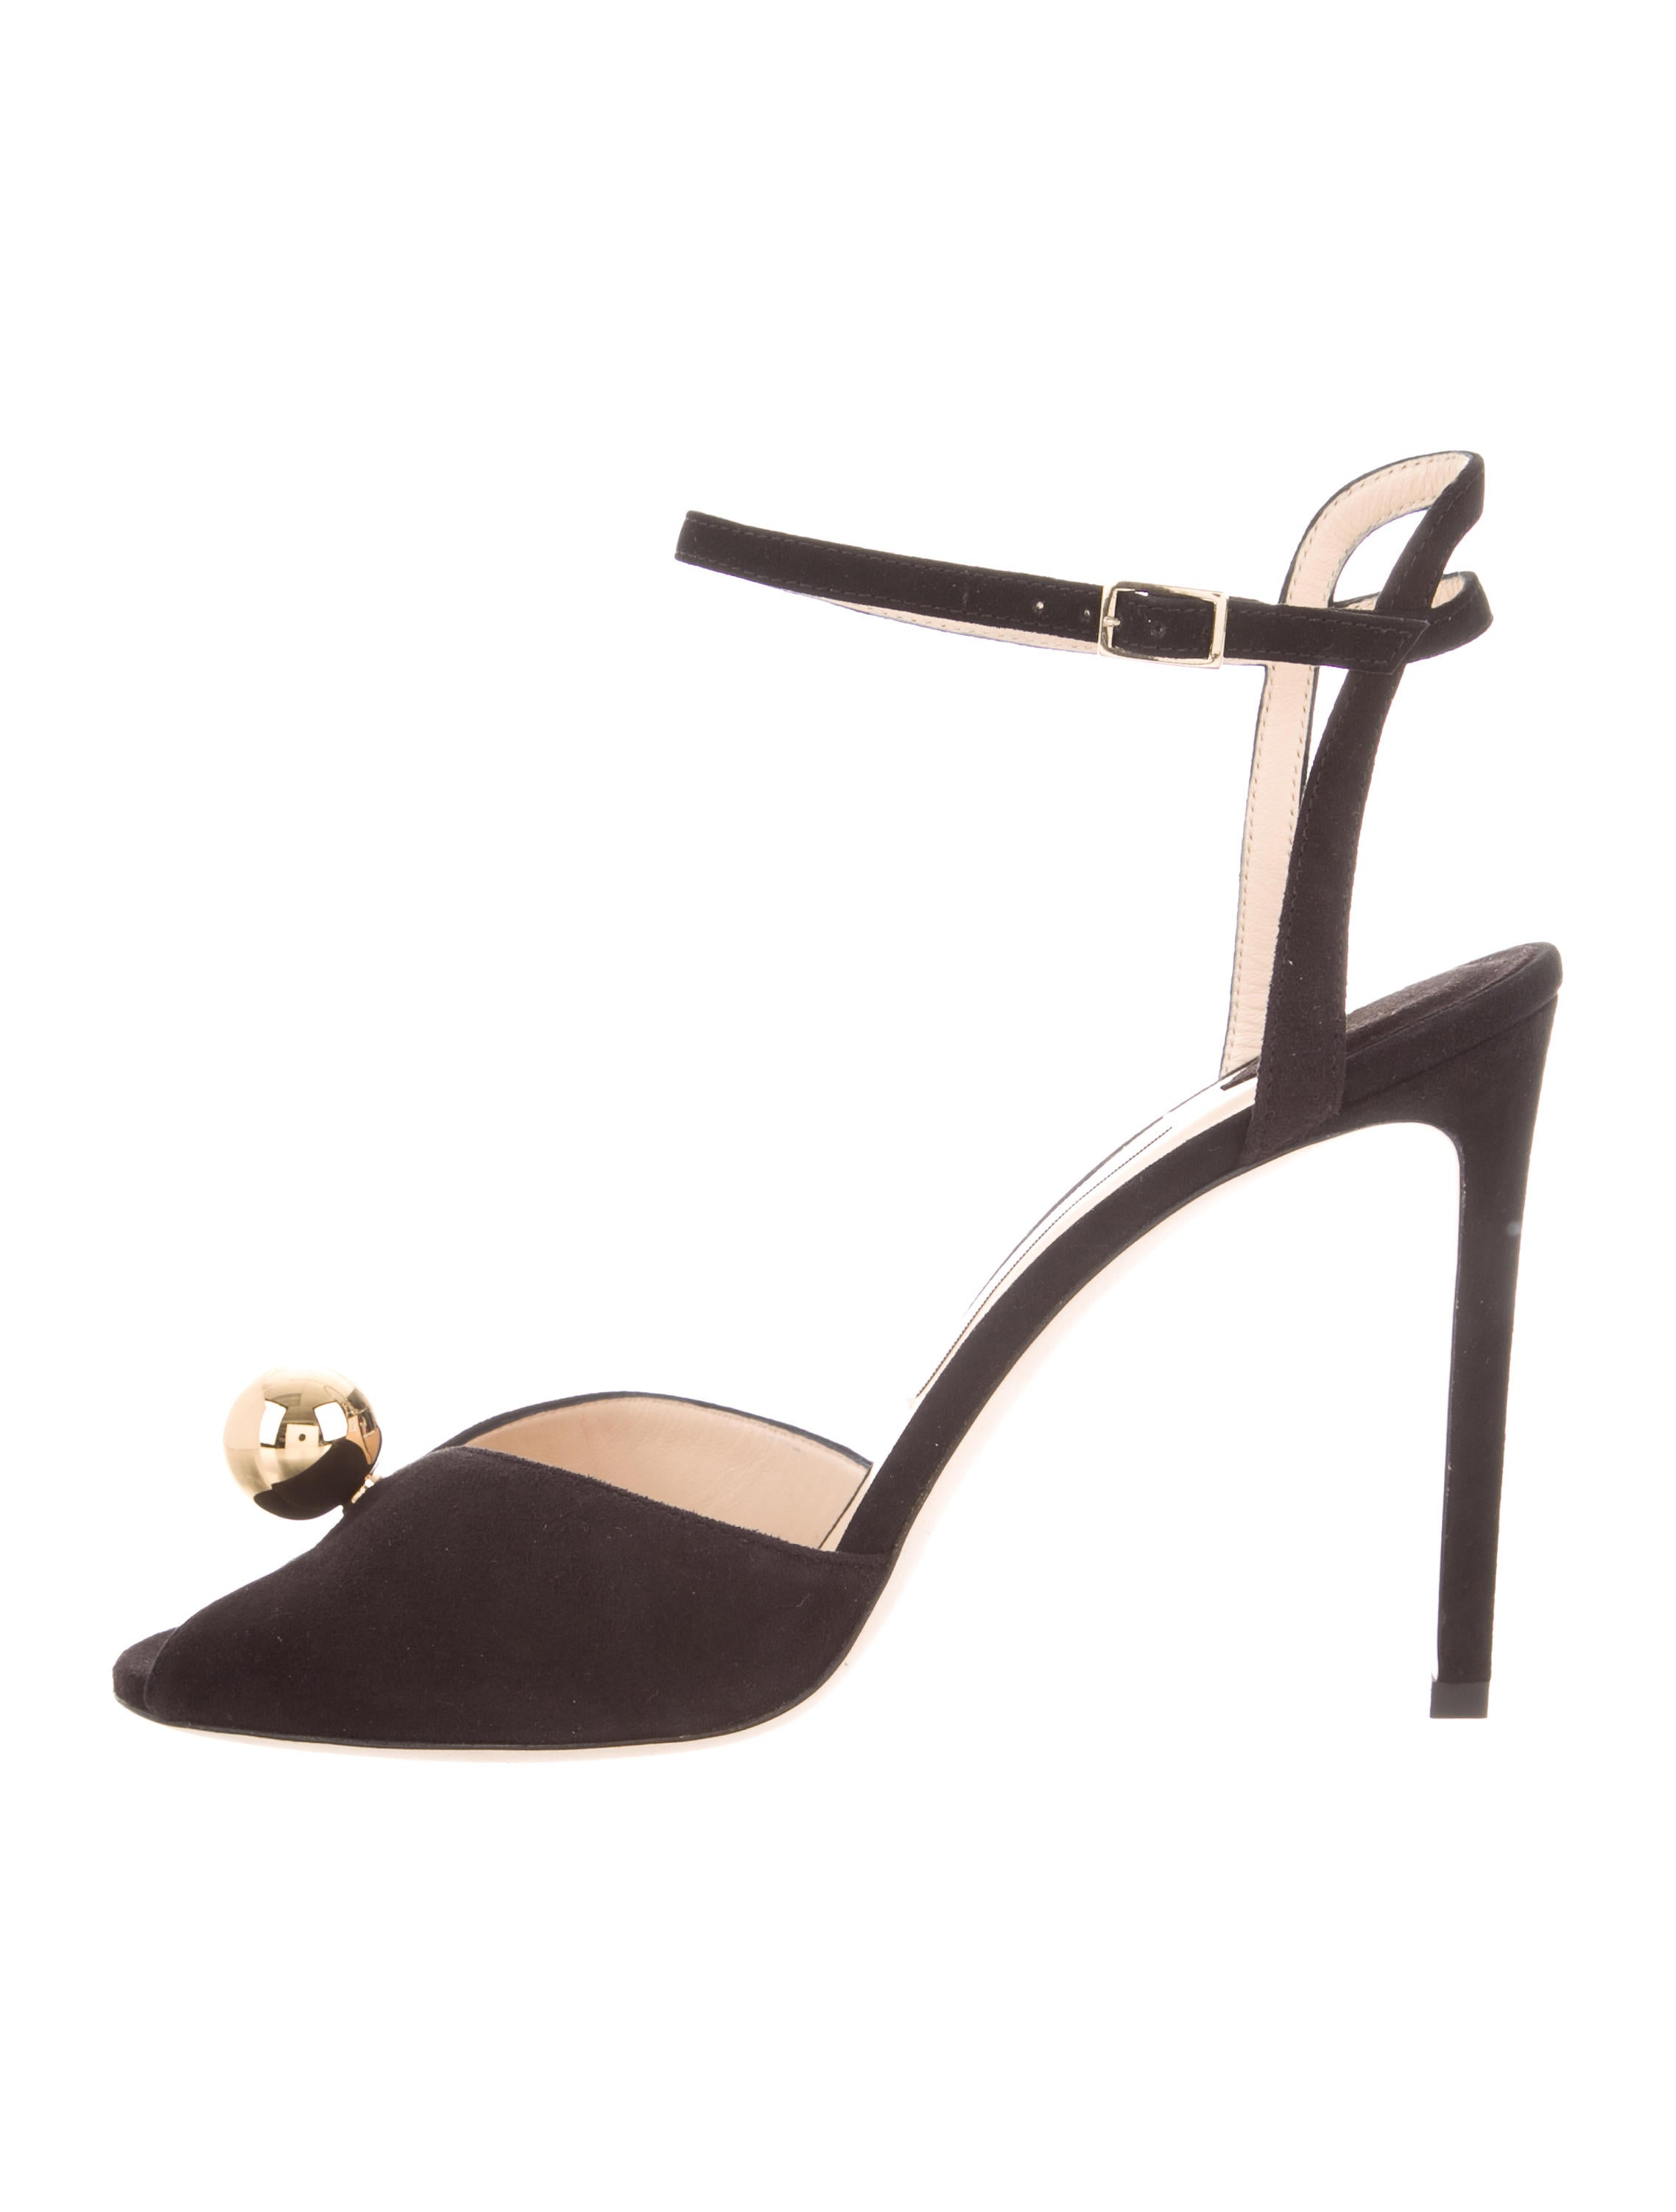 41fe5a26cce Jimmy Choo Sacora Suede Peep-Toe Pumps w  Tags - Shoes - JIM106579 ...